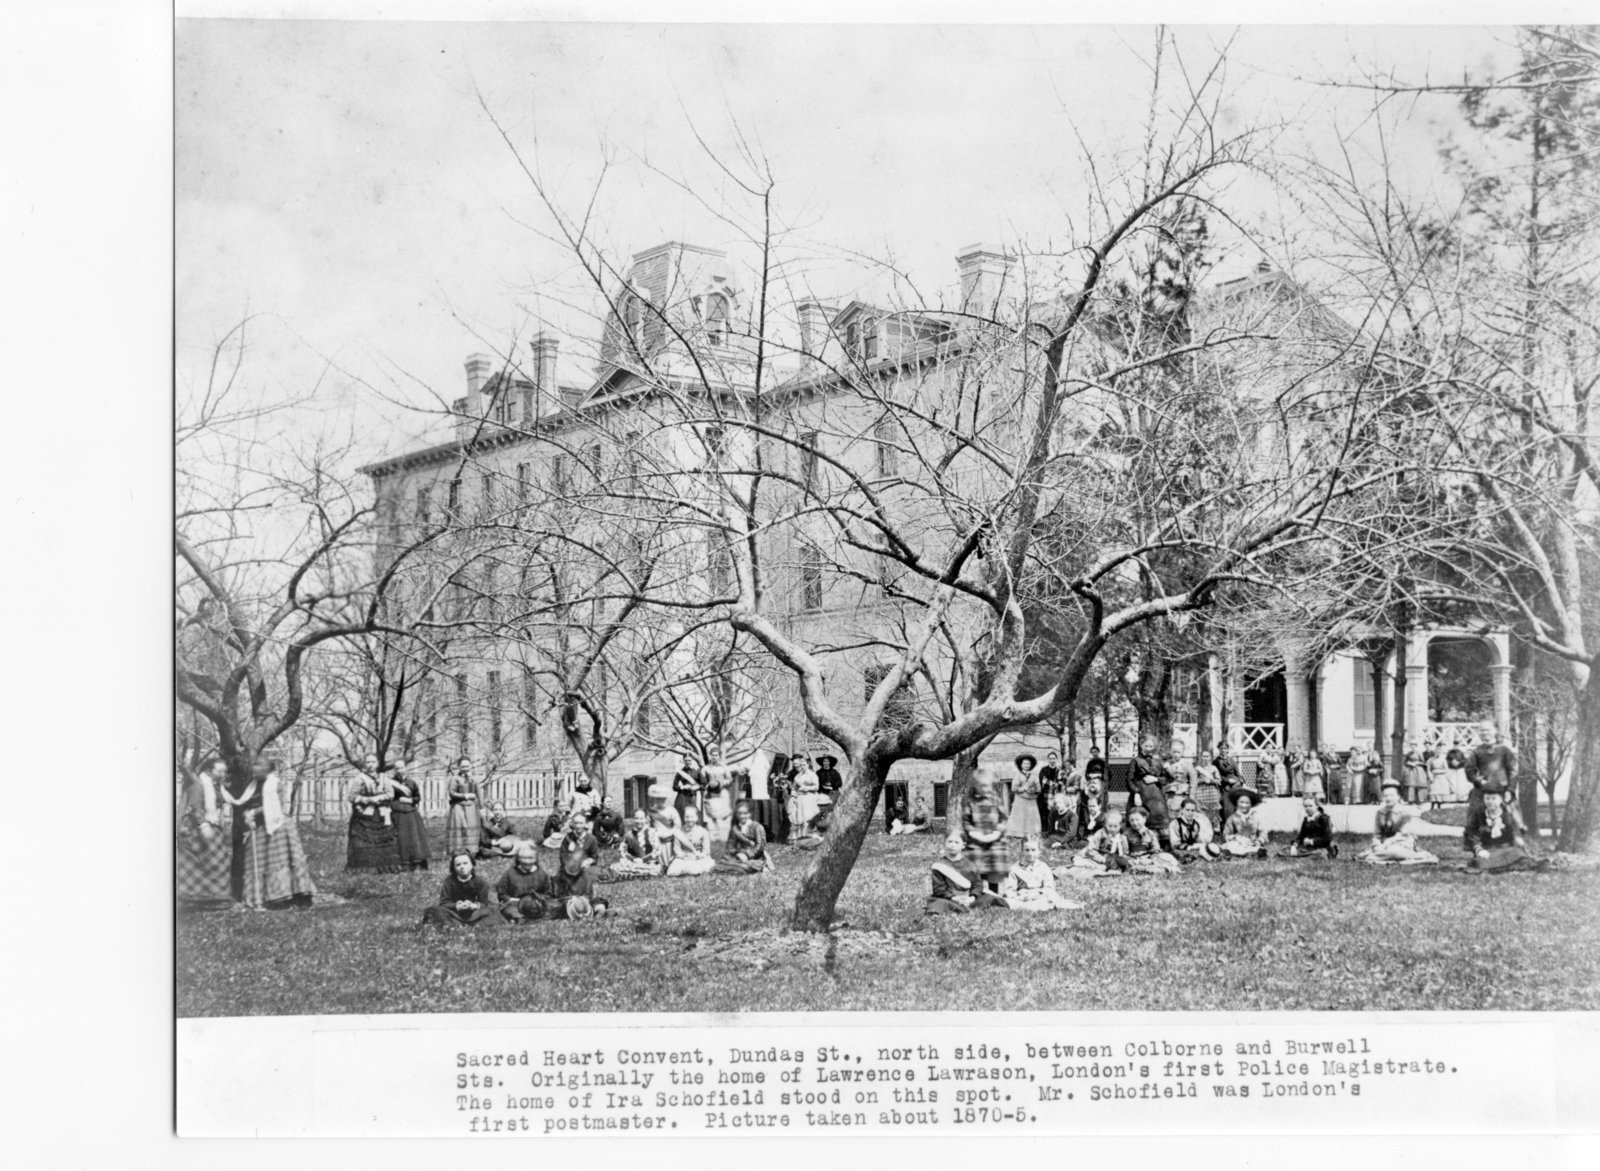 Black and white photograph showing the Sacred Heart Convent with female students and teachers posed amongst the well-treed grounds in Midtown.